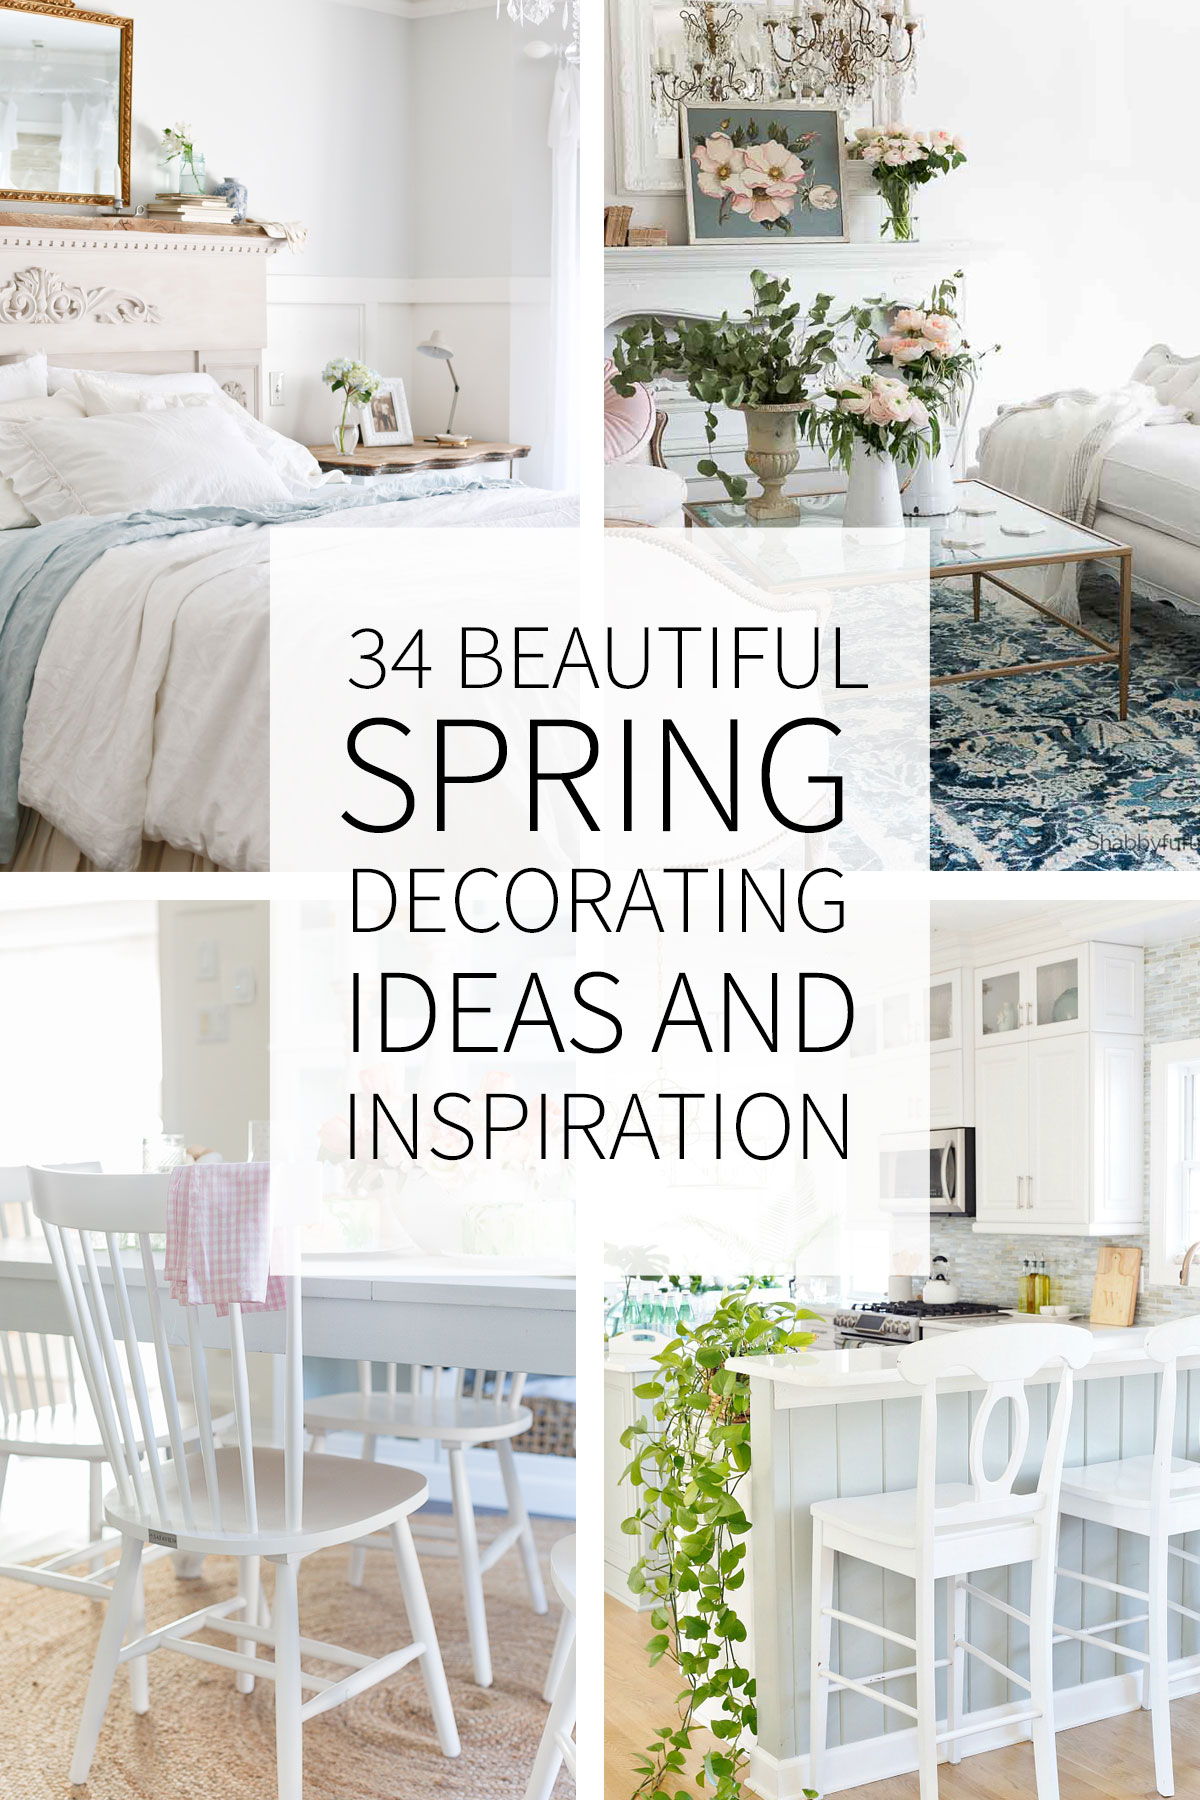 34 Inspiring and Beautiful Spring Decorating Ideas - Tidbits